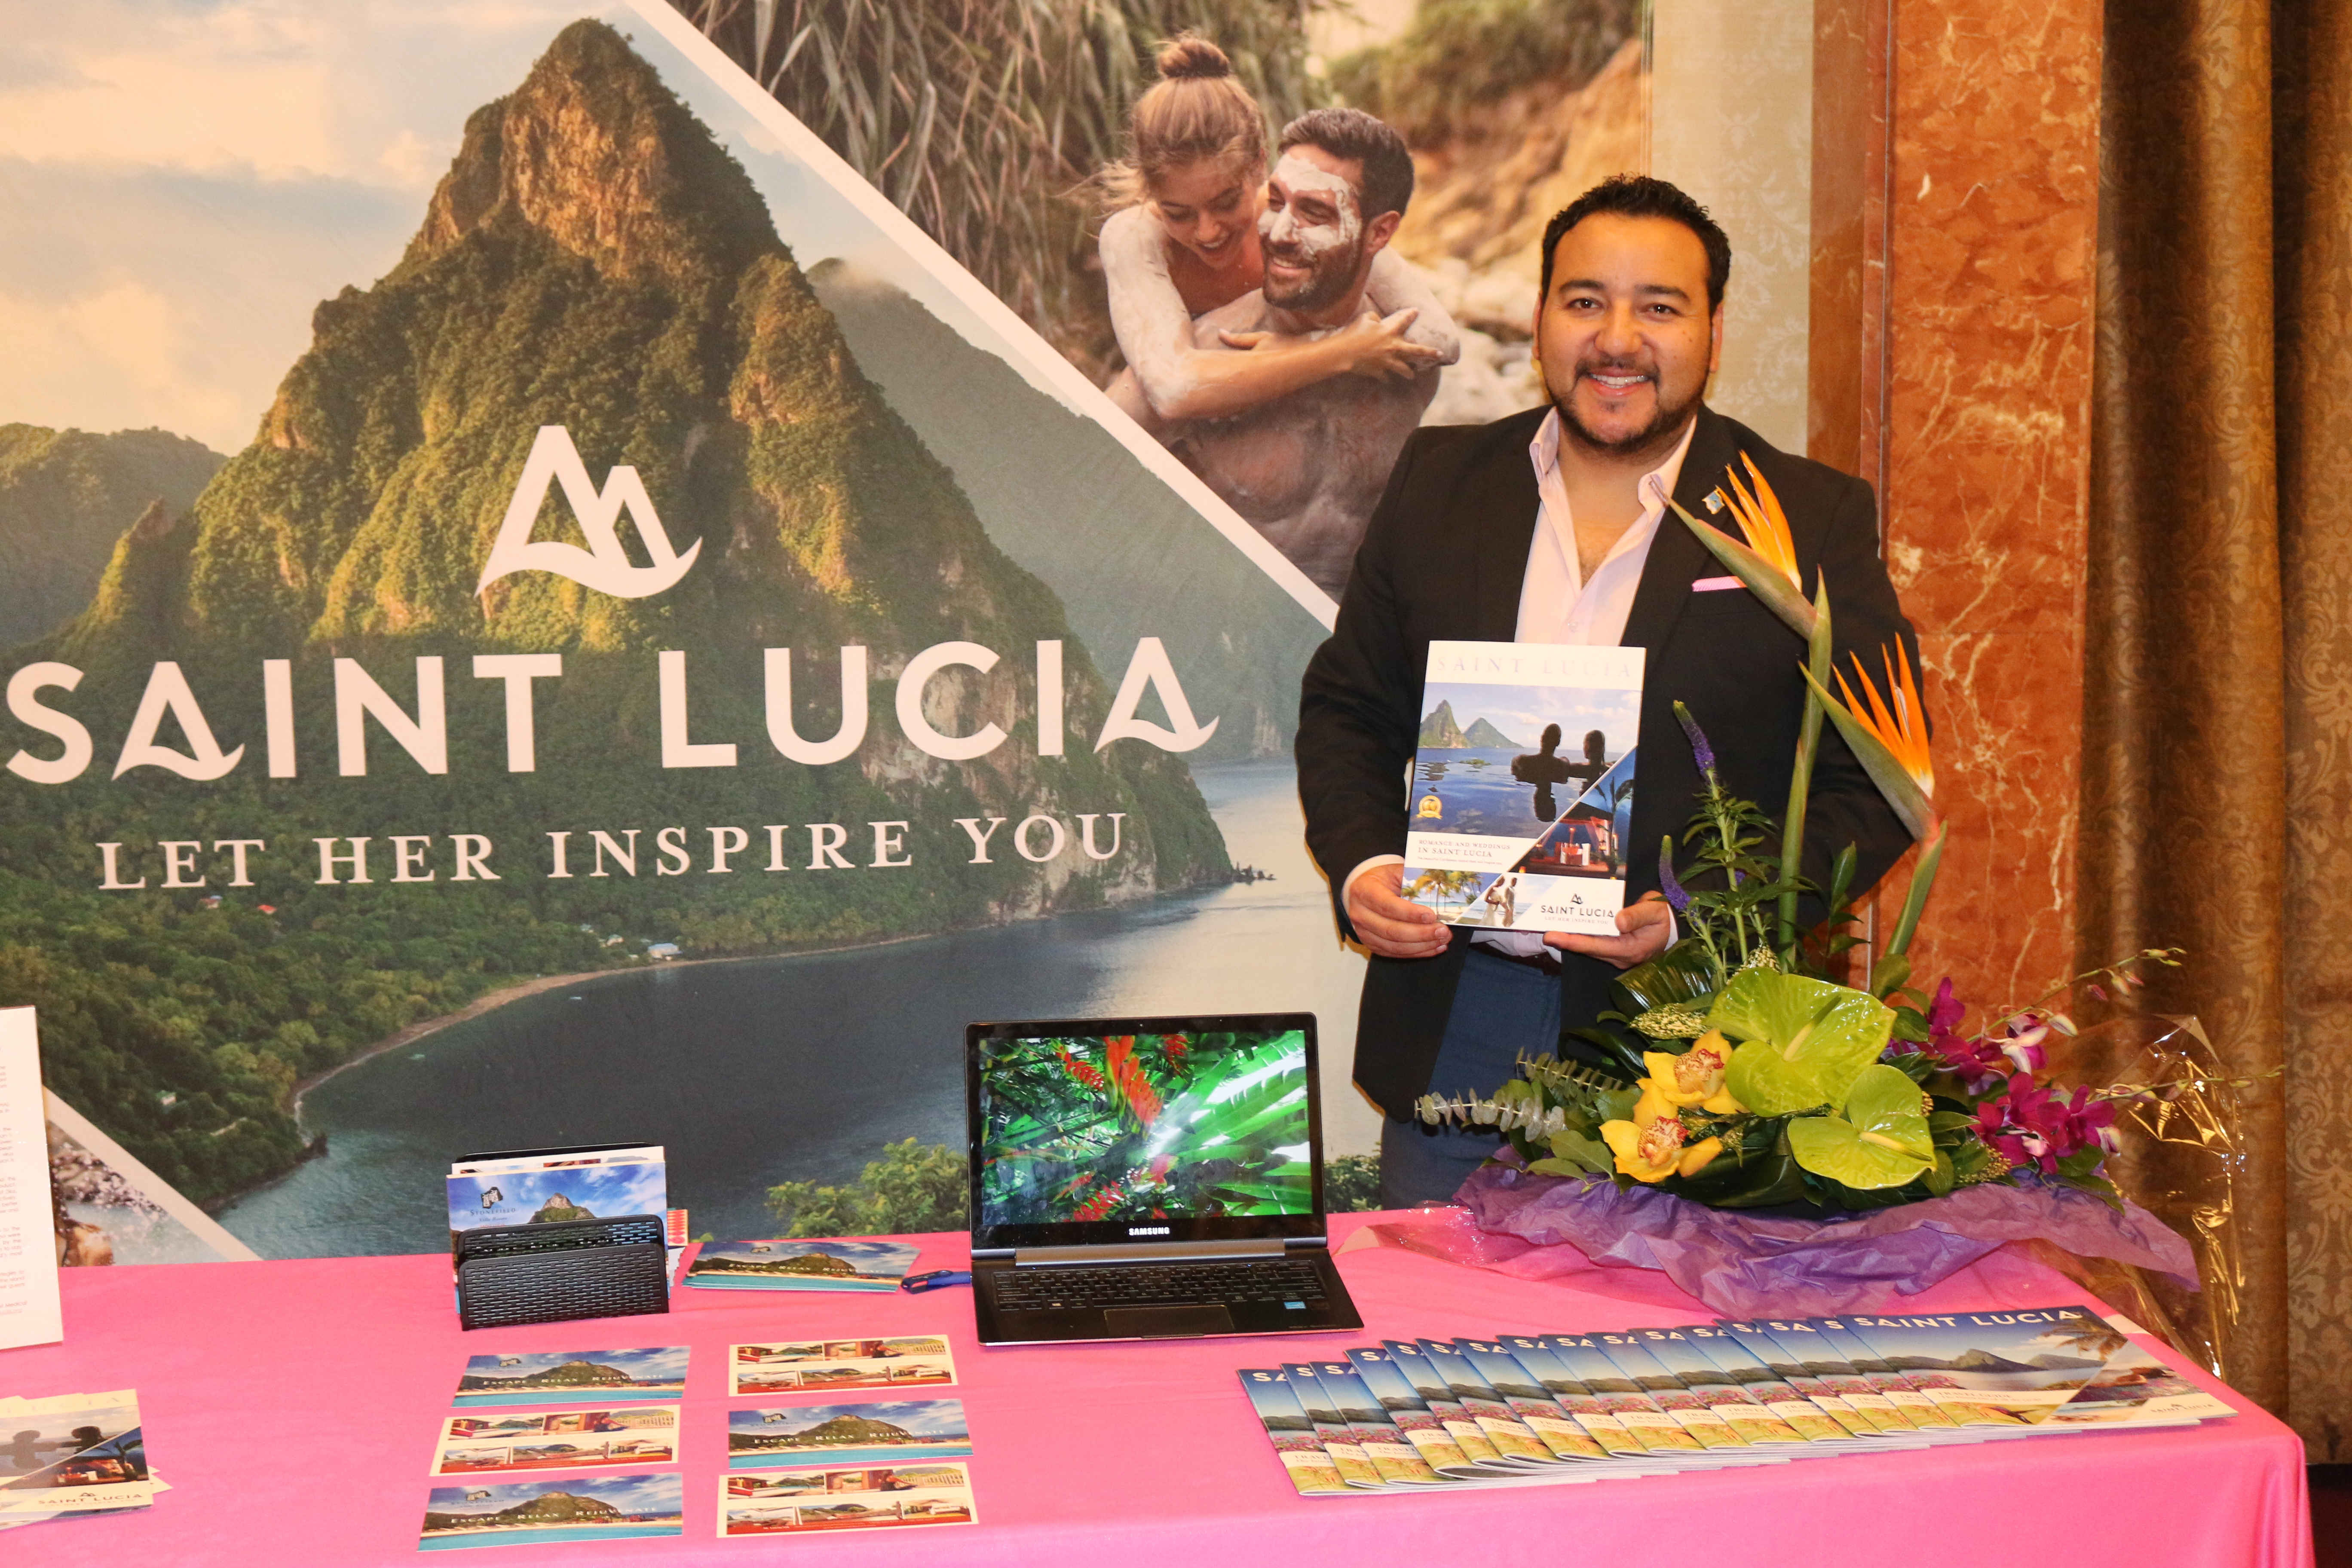 Rod Hanna, national trade sales manager for the Saint Lucia Tourism Authority, Canada